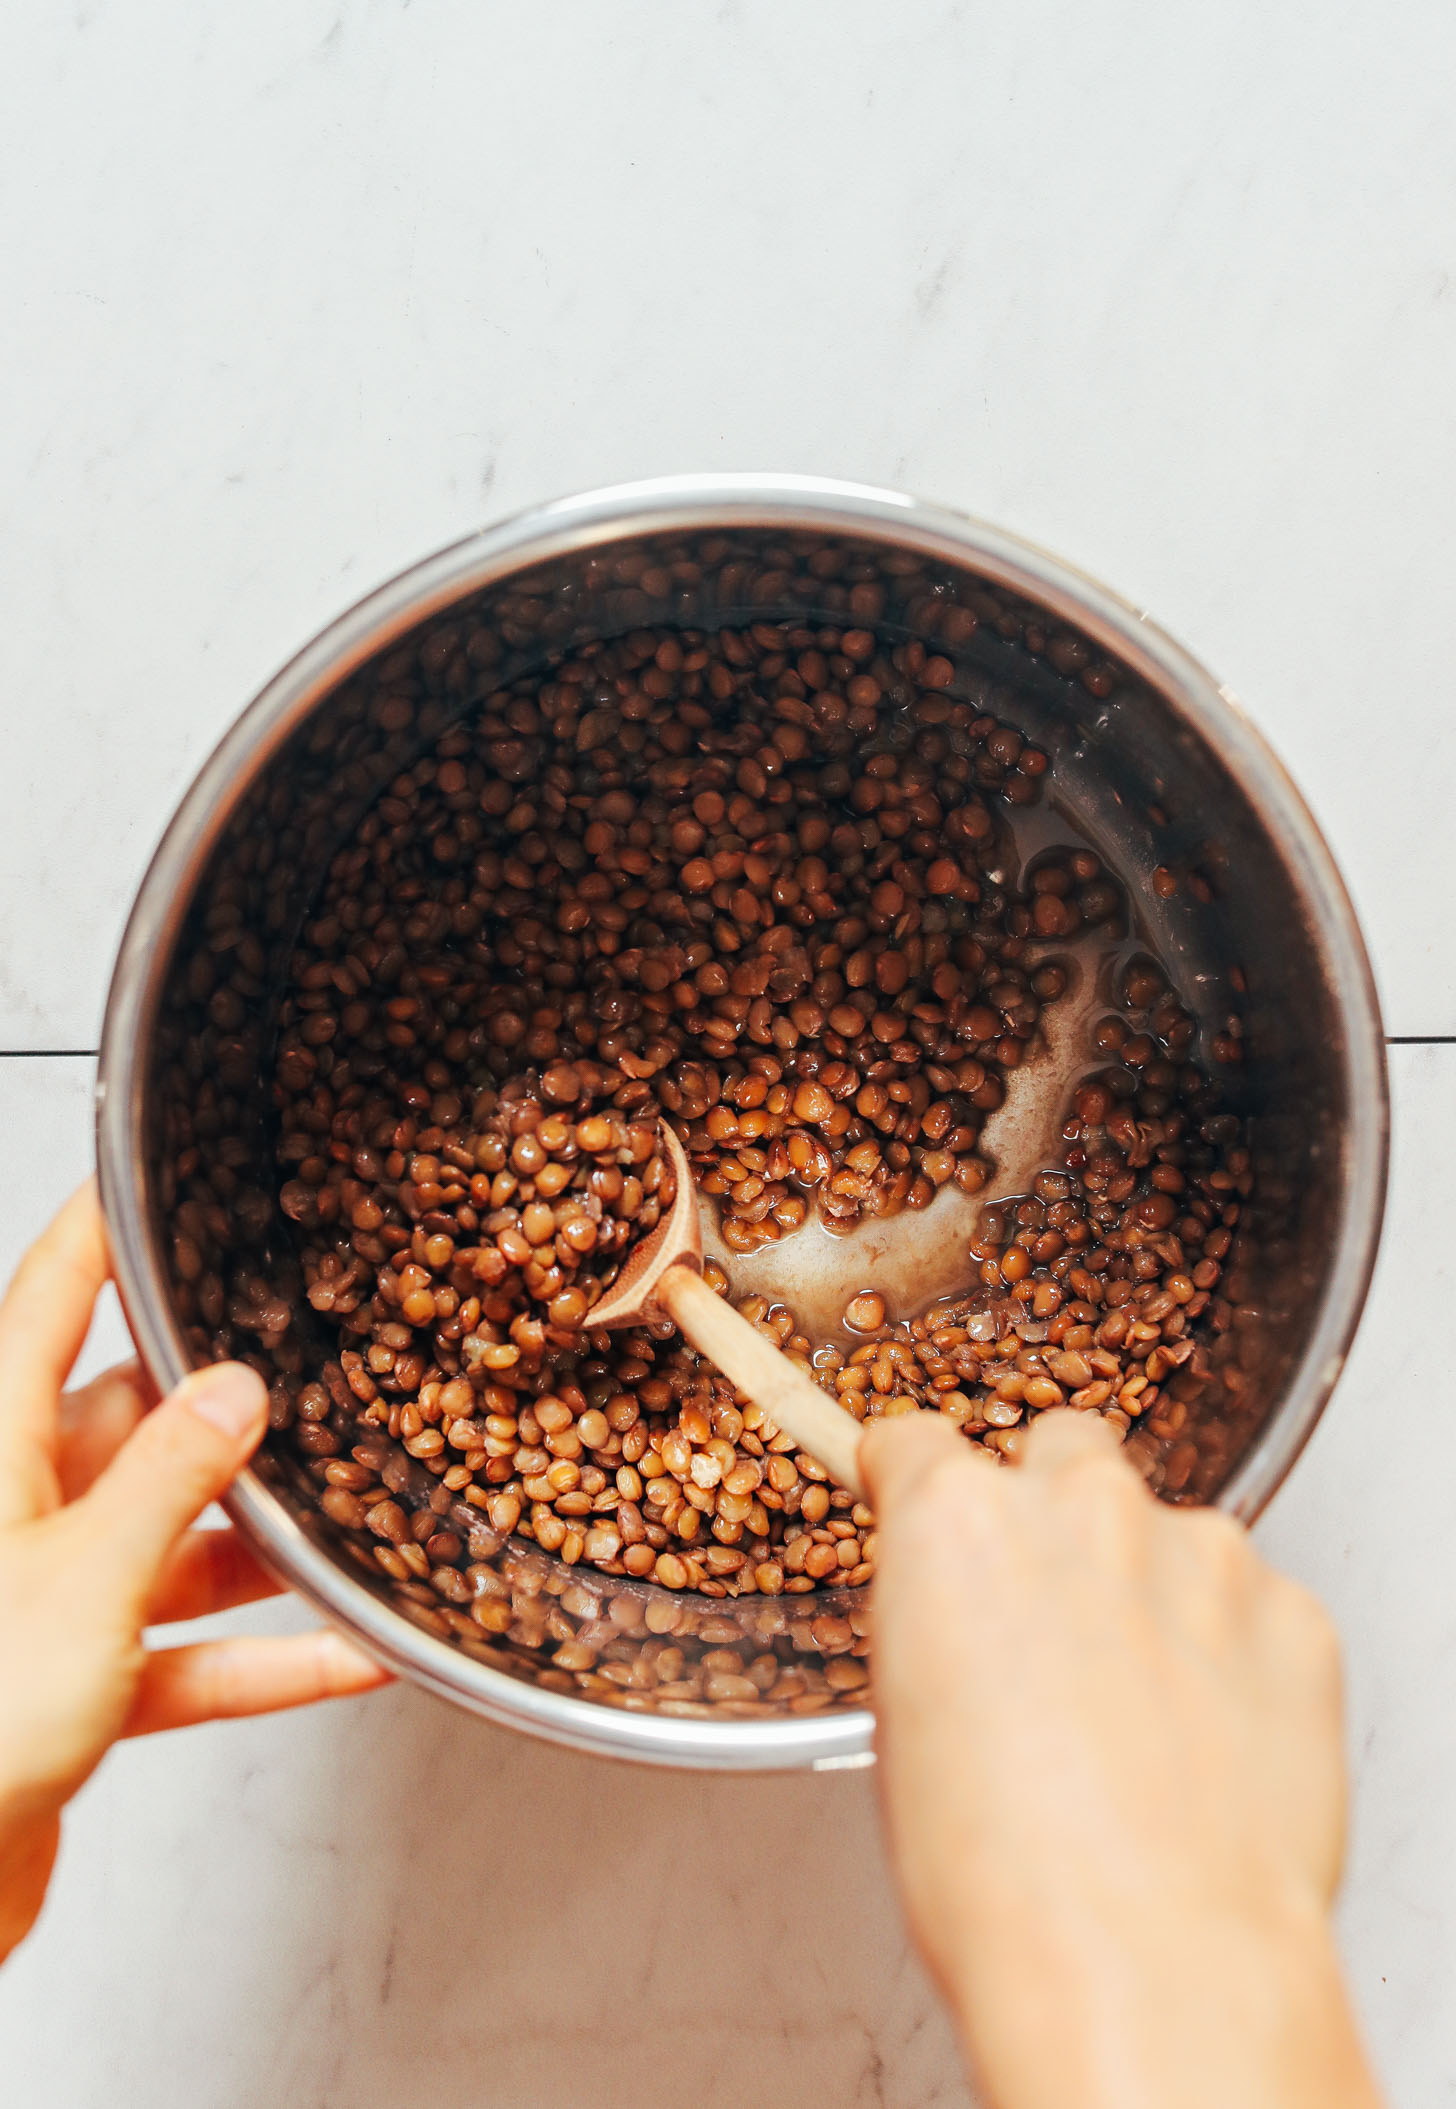 Stirring cooked lentils in the Instant Pot